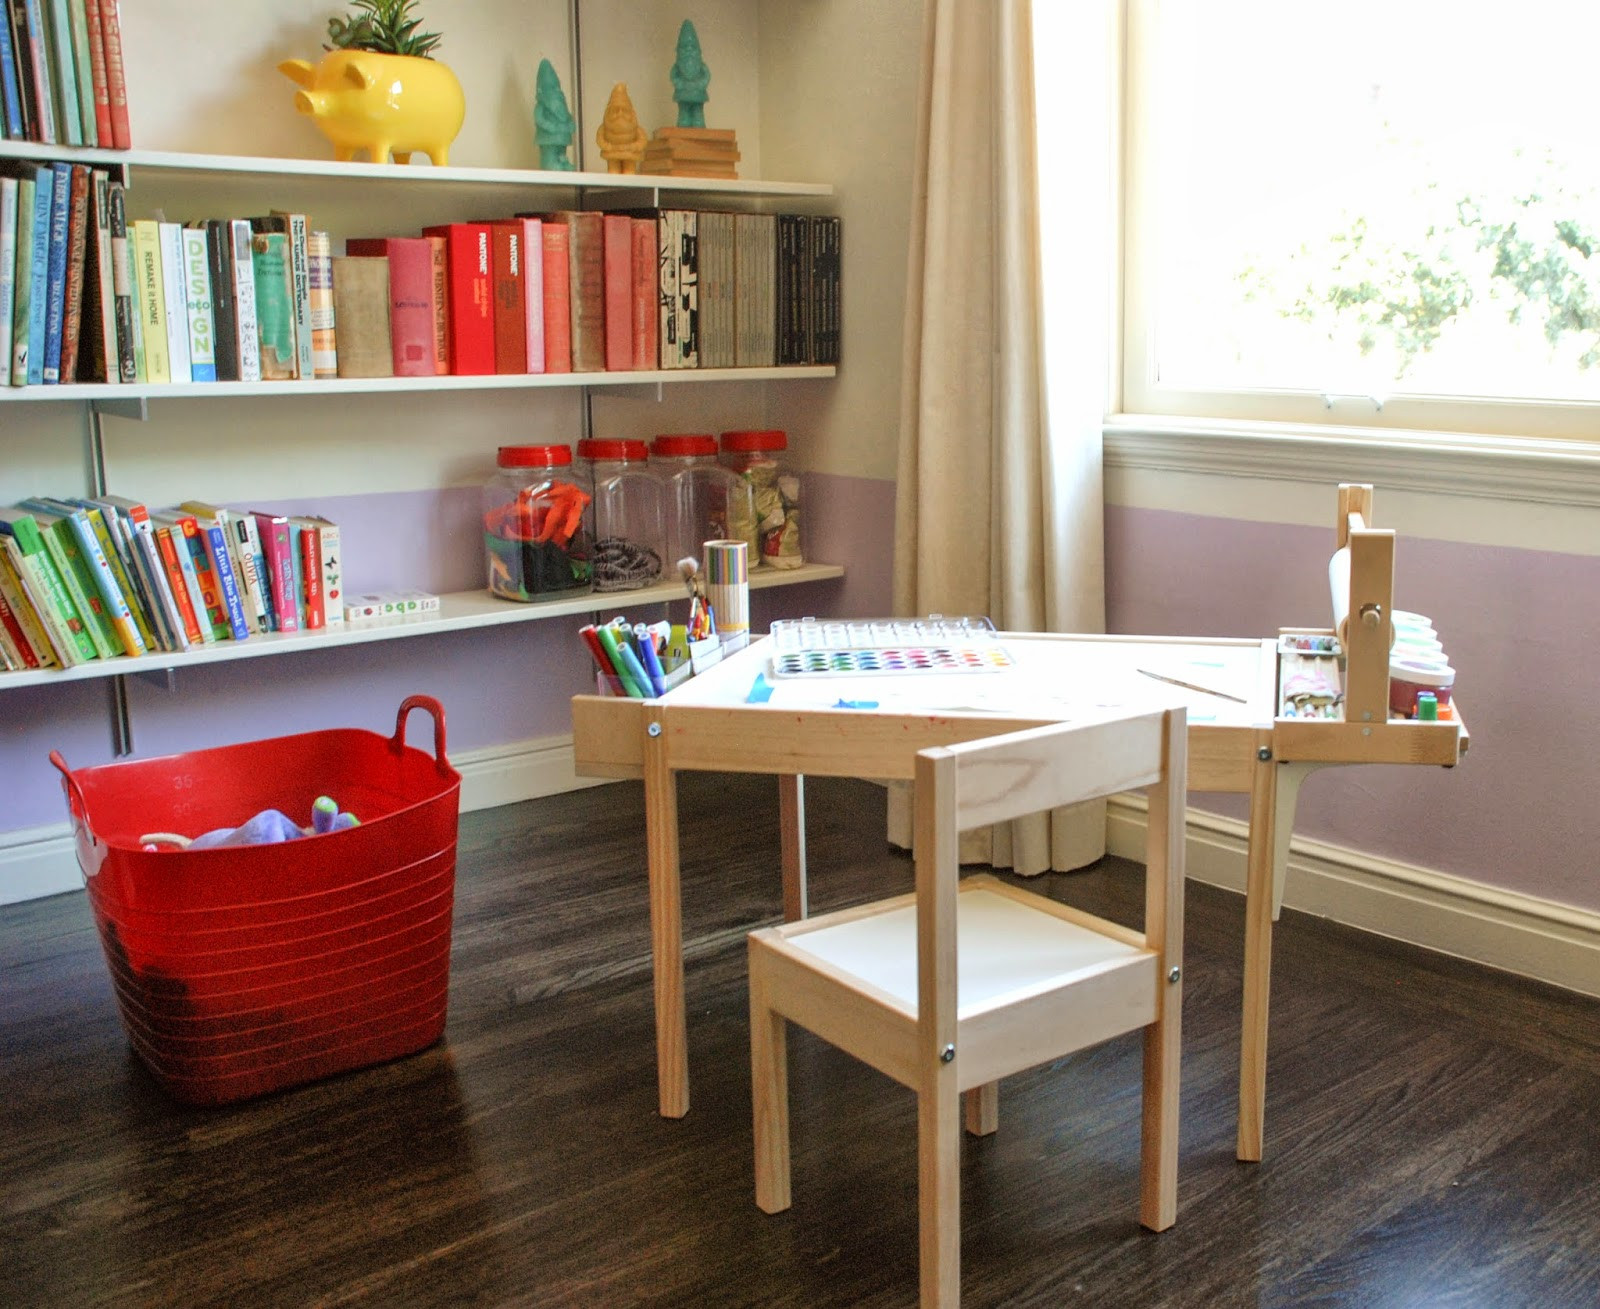 Best ideas about DIY Kids Craft Table . Save or Pin Design Ingenuity Now.